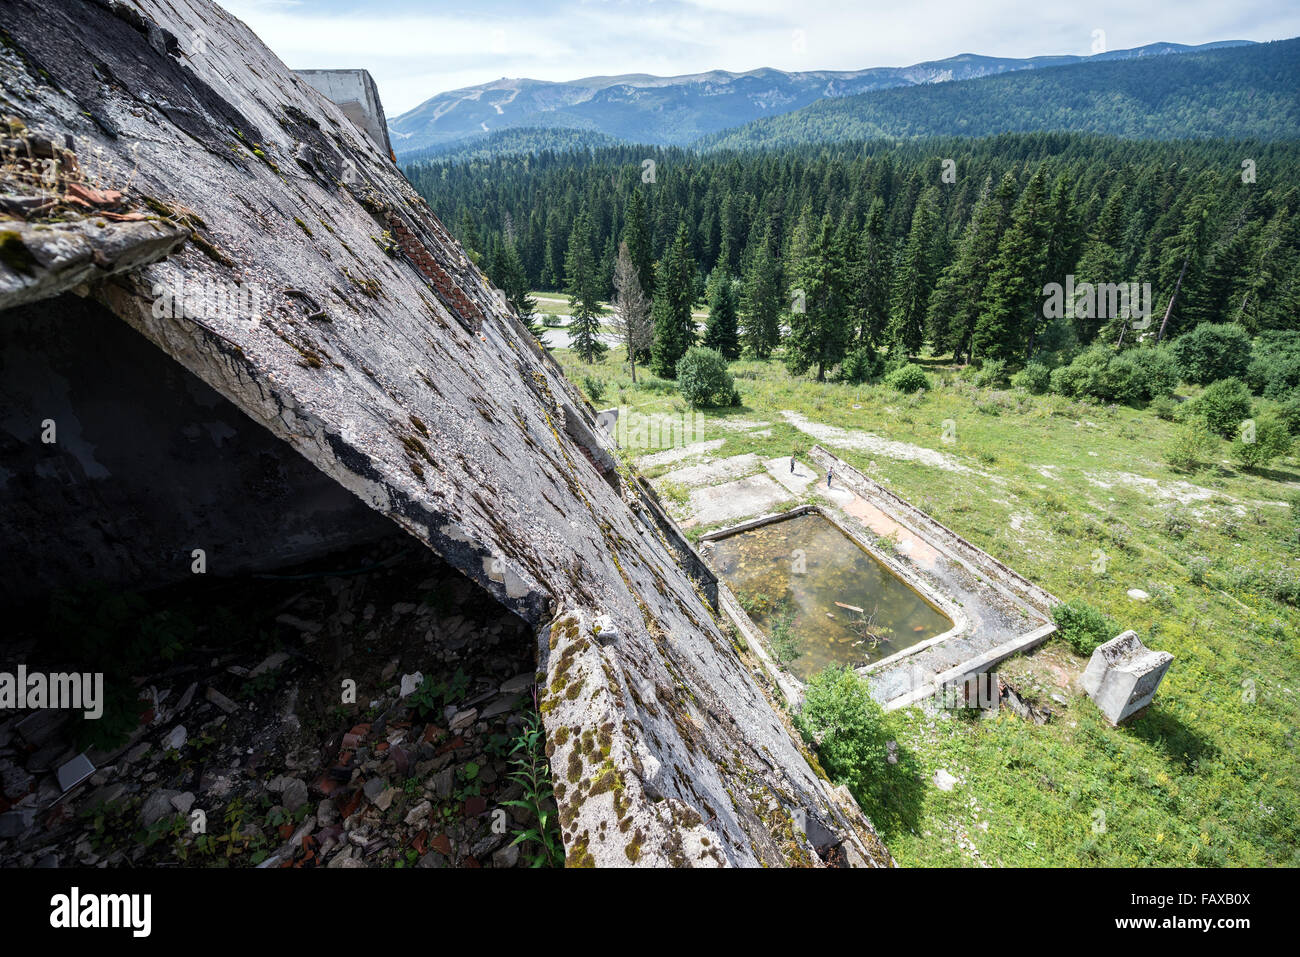 Ruins of Igman Hotel near Igman Olympic Jumps, destroyed during Bosnian War in Bosnia and Herzegovina - Stock Image